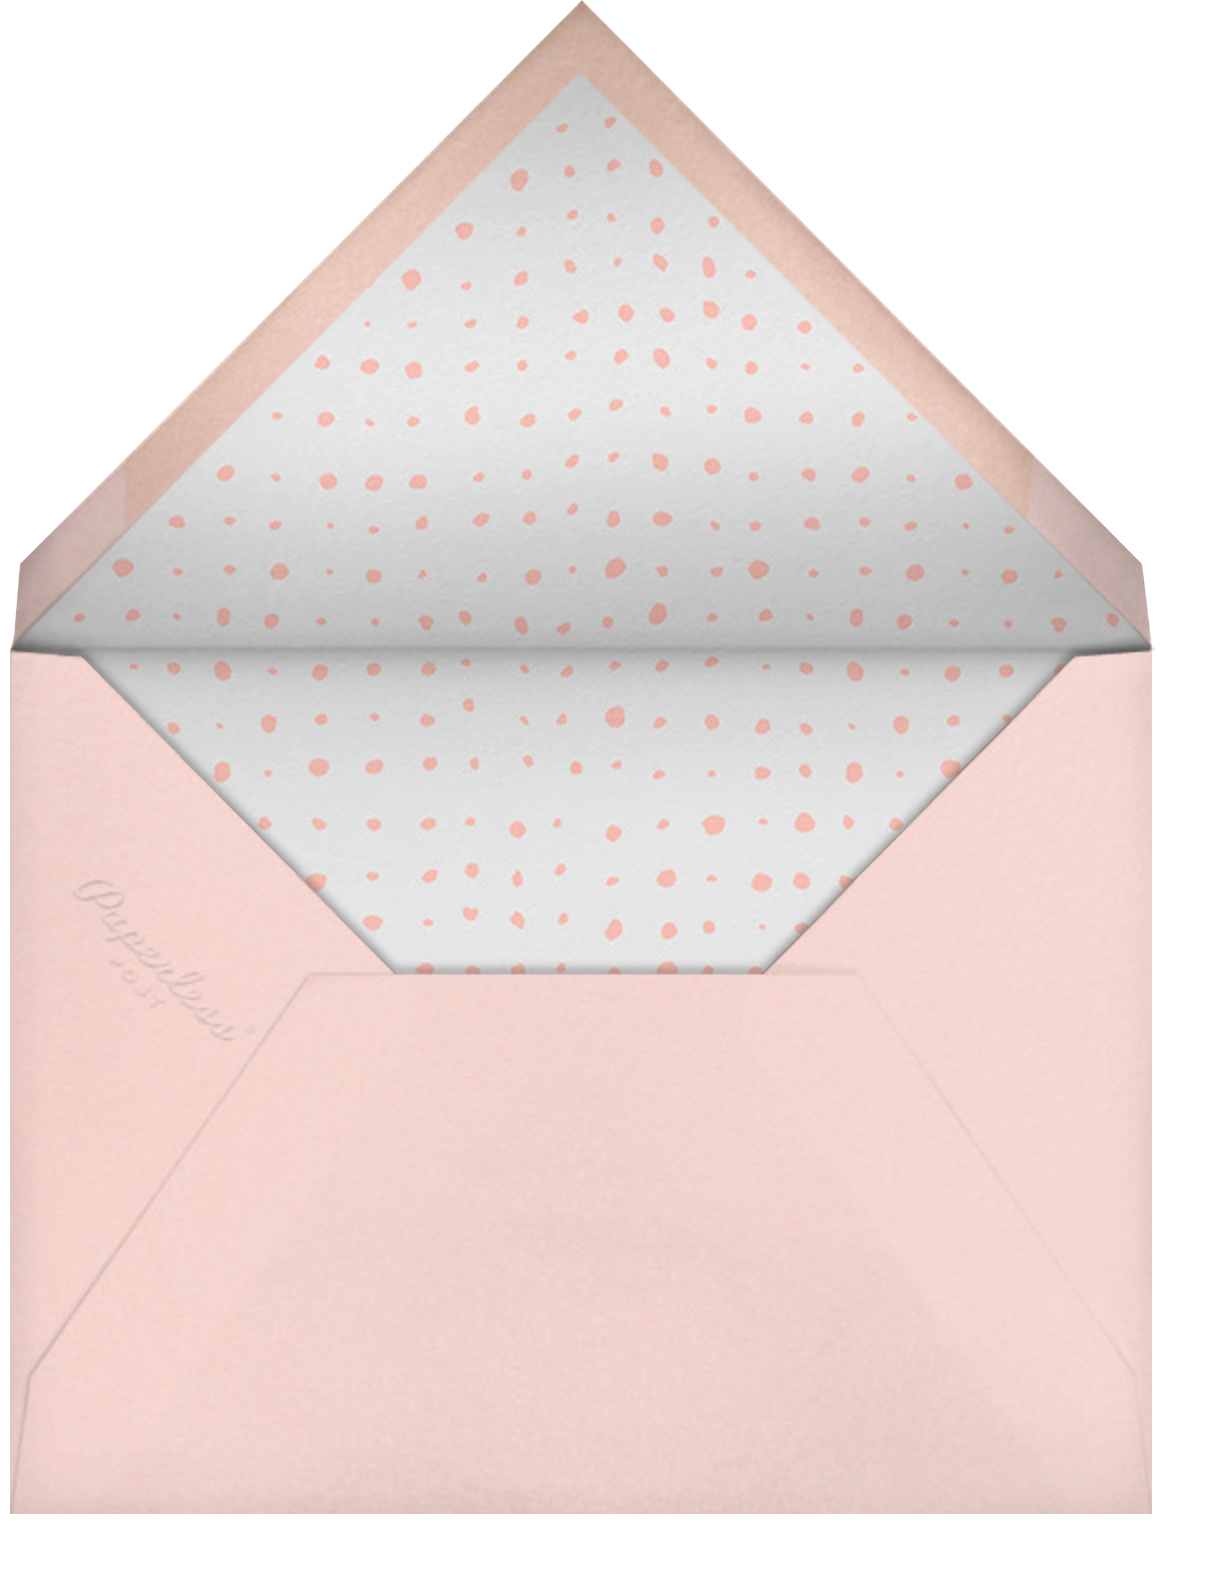 With Hugs and Kisses (Double-Sided) - Gold - Linda and Harriett - Valentine's Day - envelope back